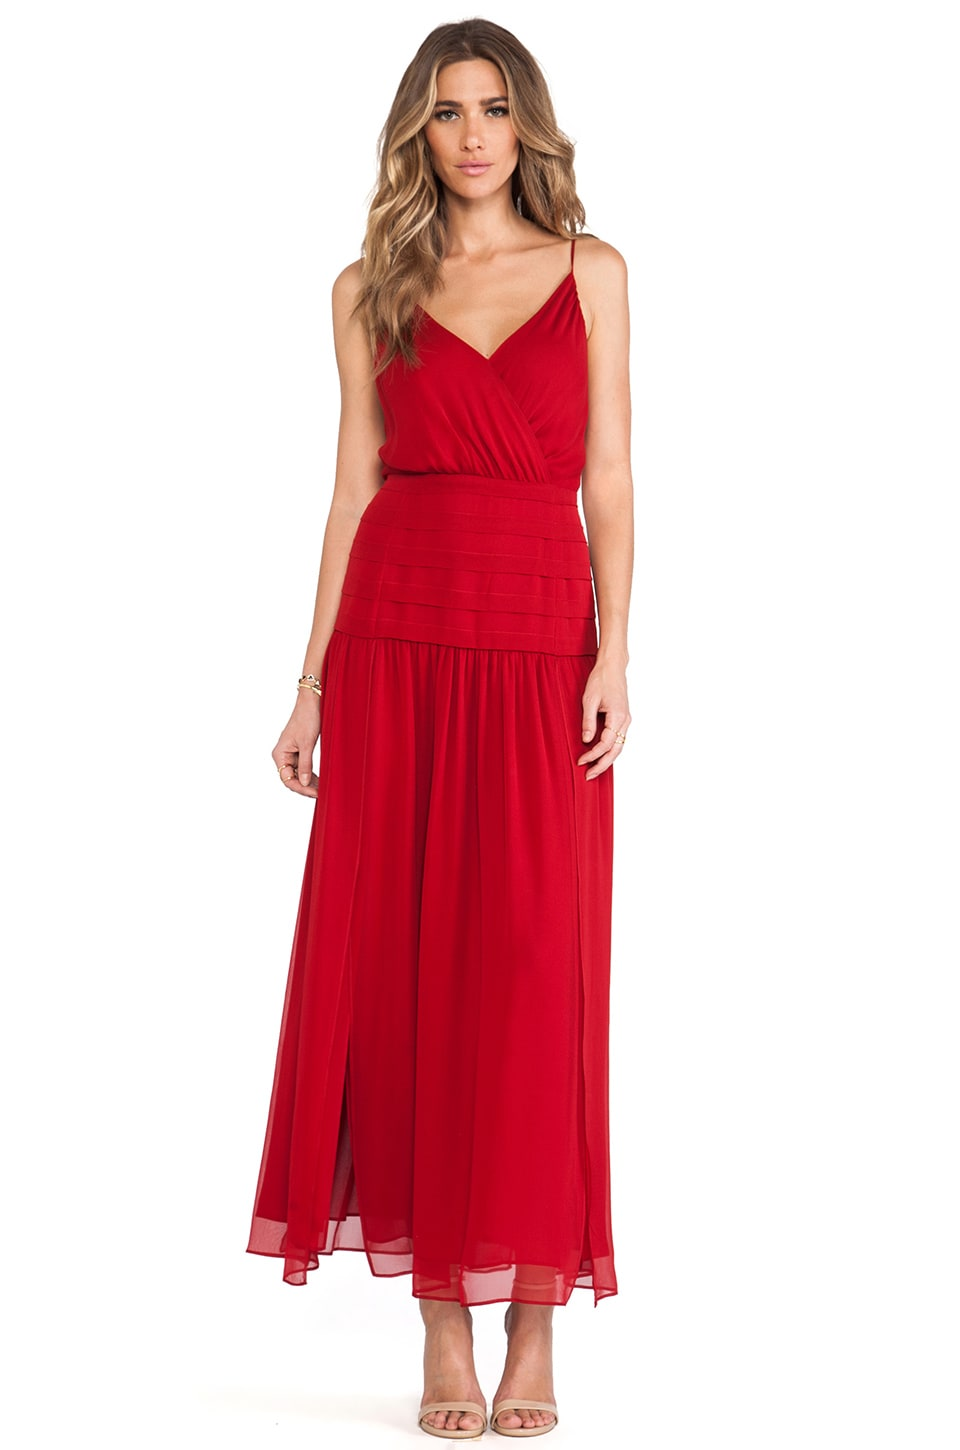 Haute Hippie Sexy Rachel Dress with Belt in Scarlet